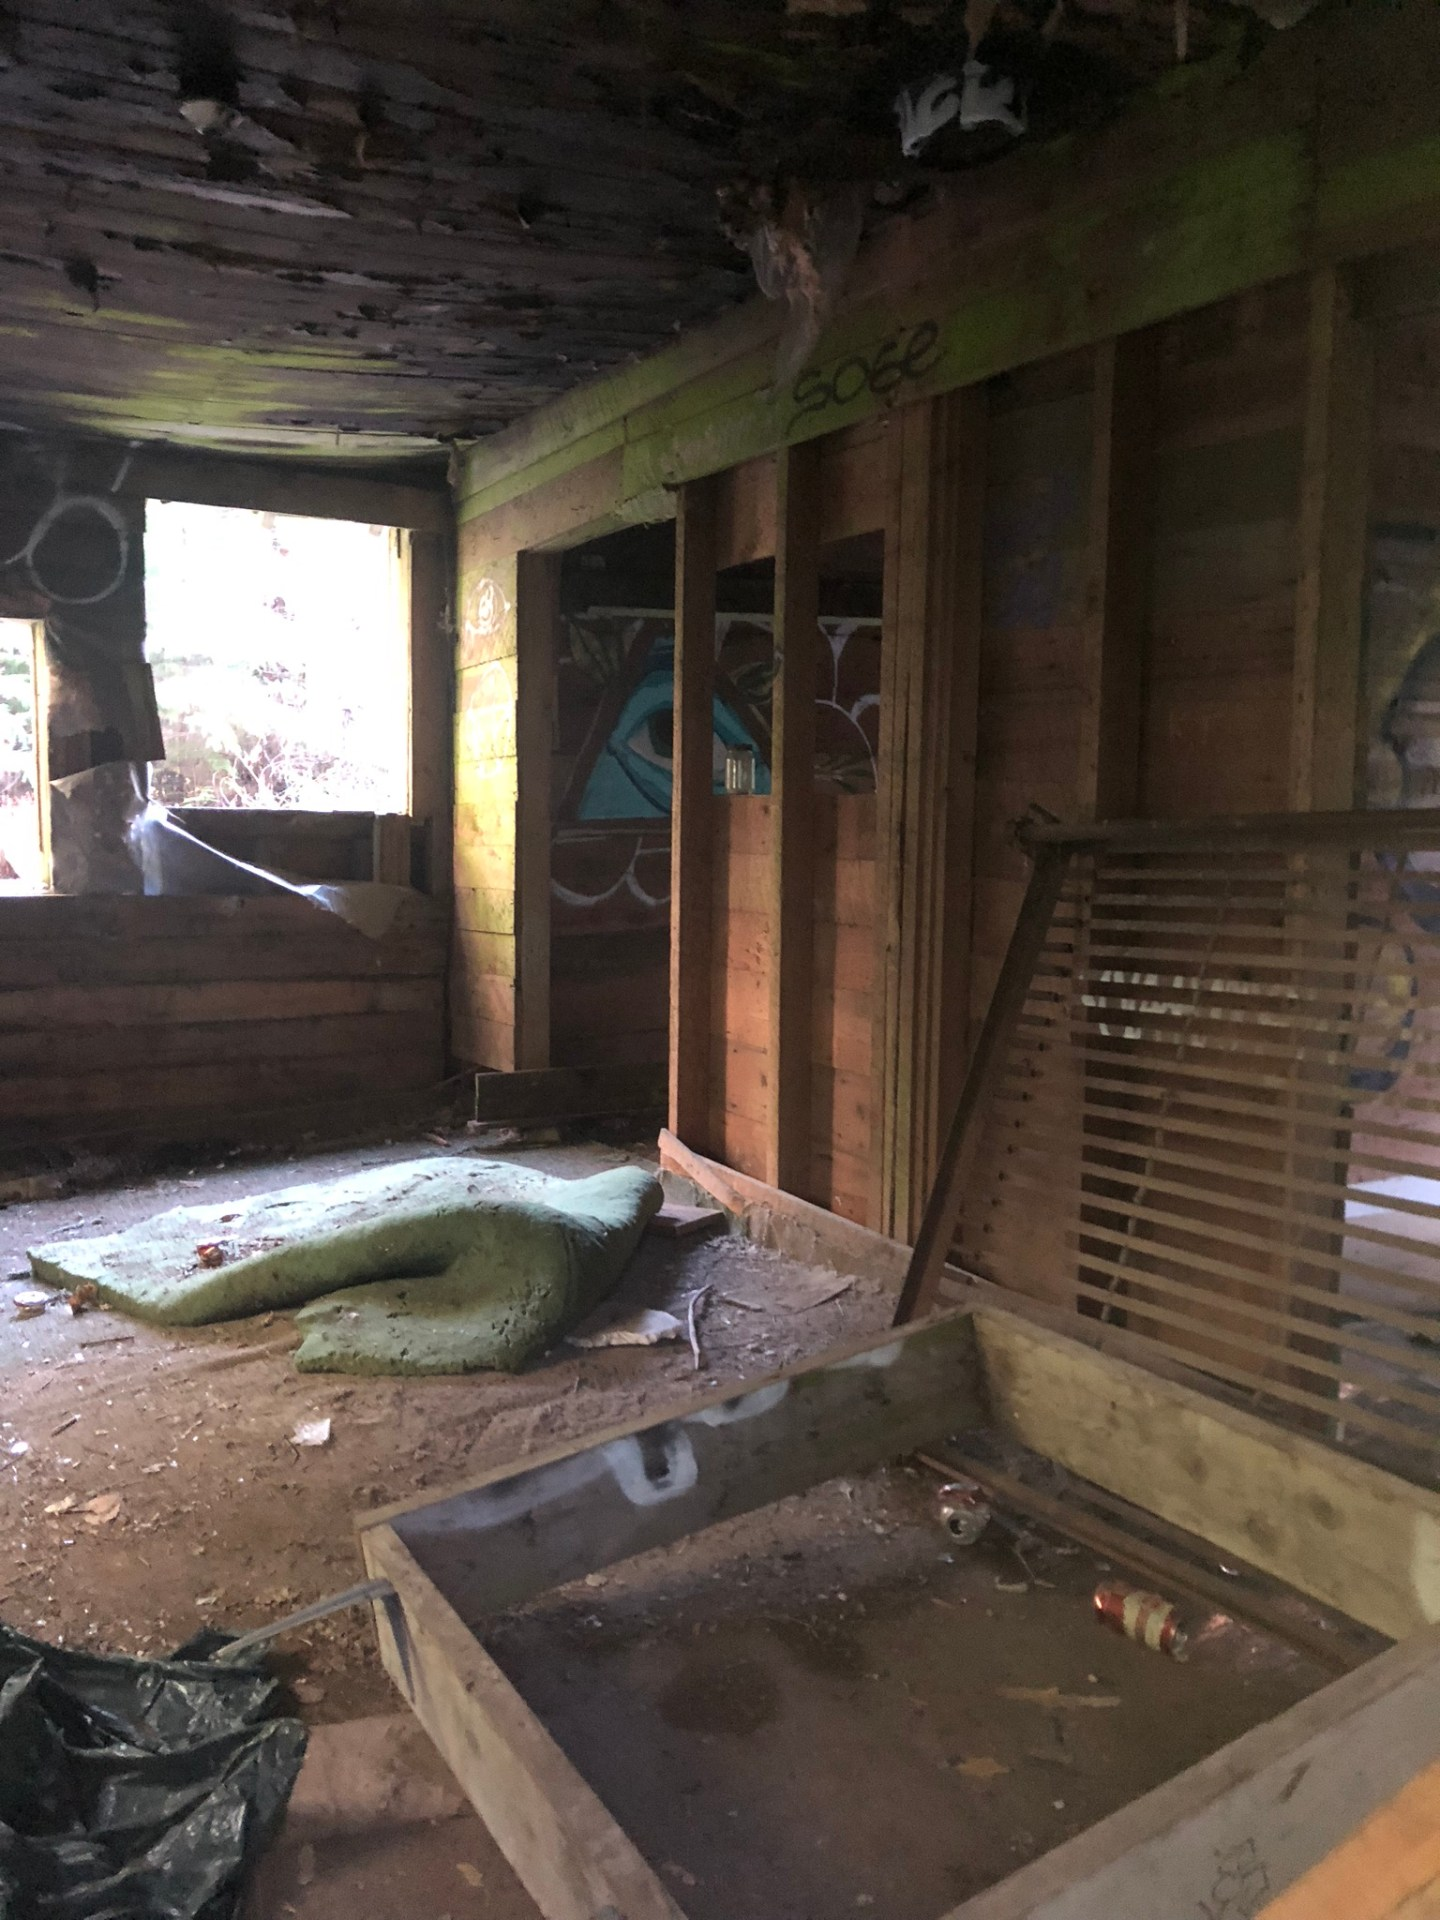 Inside the abandoned house in Parkhurst, Whistler